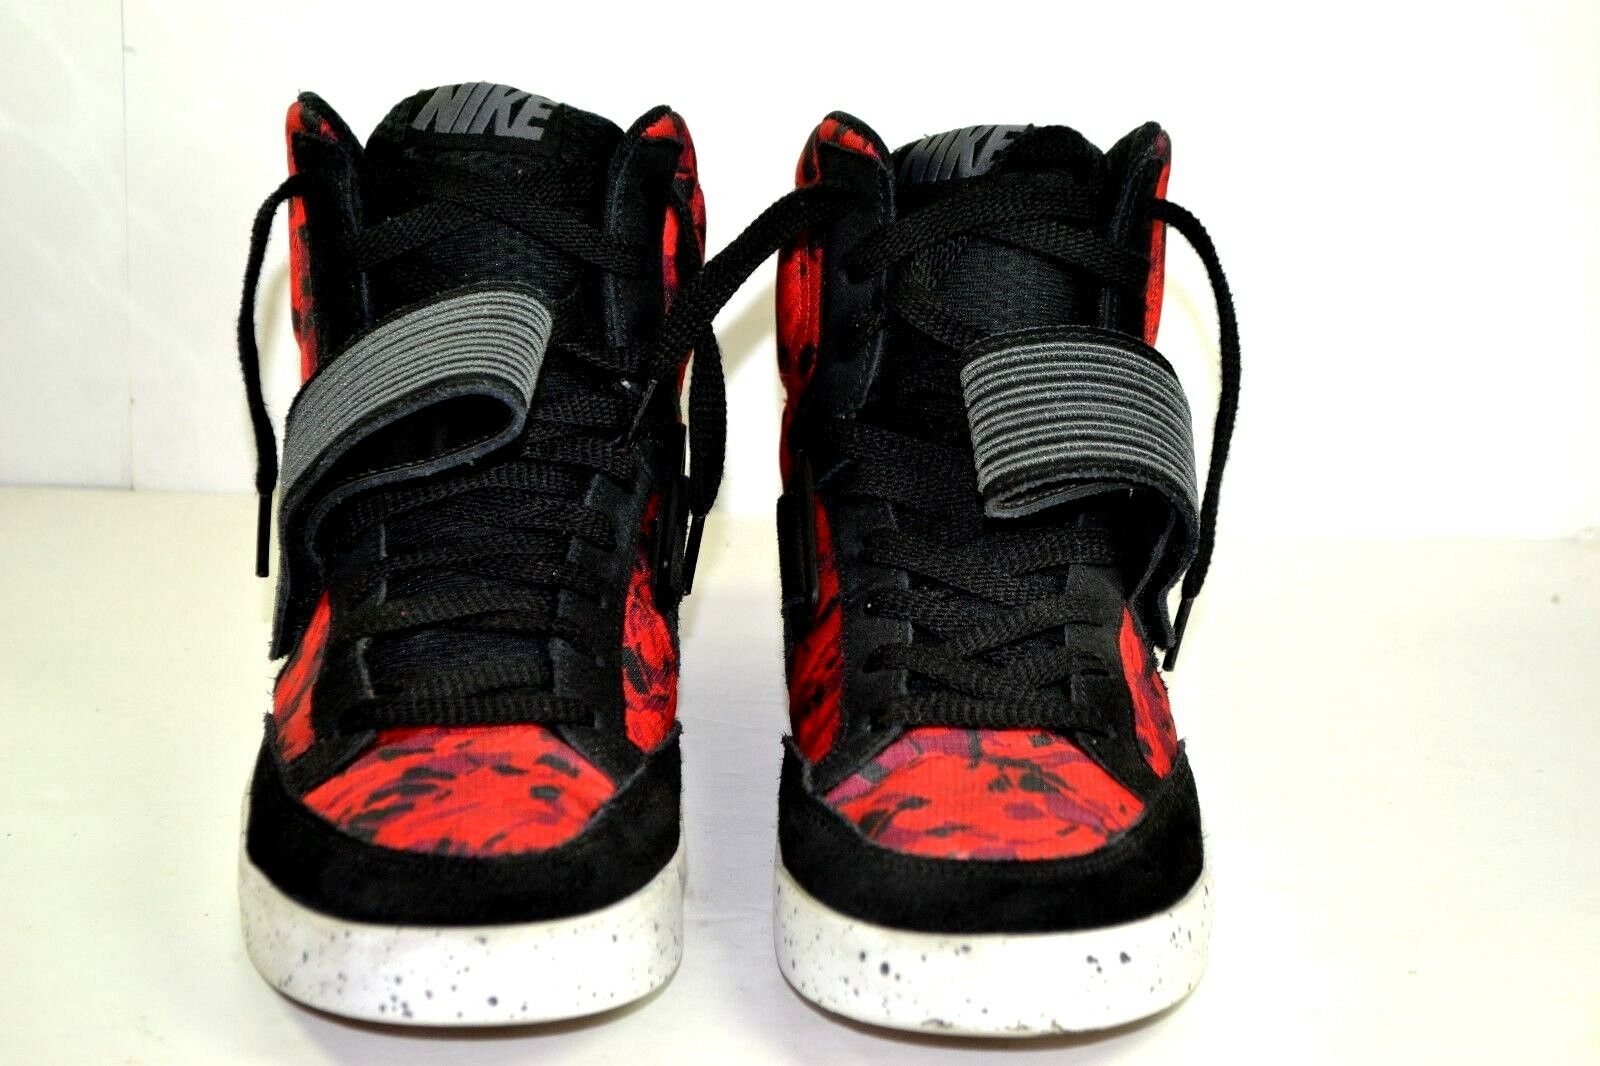 Nike Skystepper Athletic Sports Gym Men Shoes Size 10.5 Black White Hyper Red